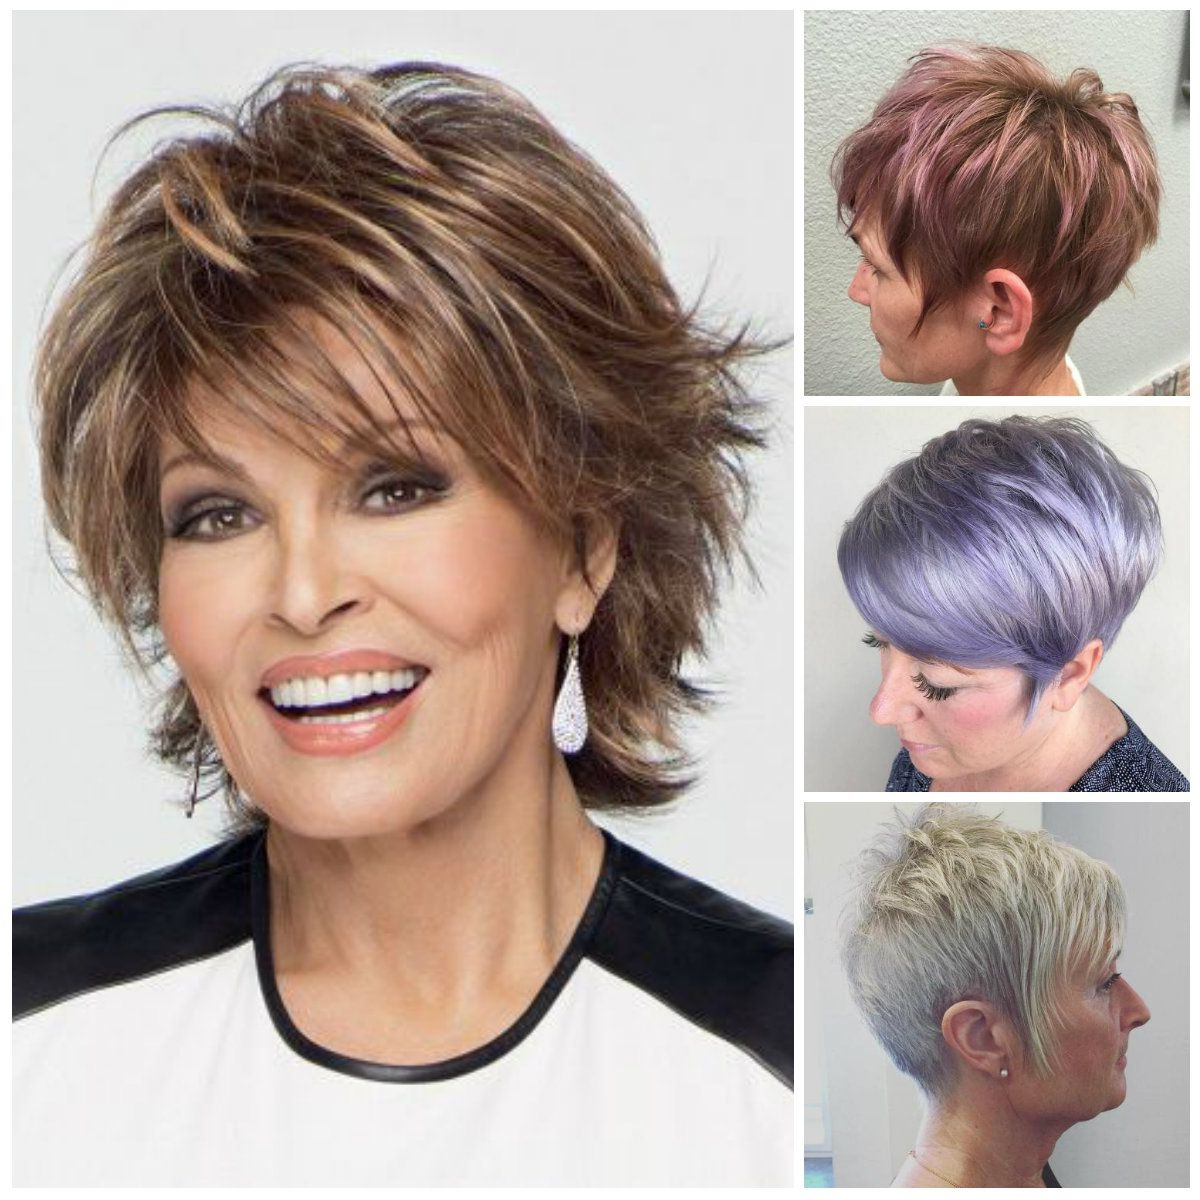 2019 Short Hairstyles For Over 60 Years Old With Glasses Awesome With Short Haircuts 60 Year Old Woman (View 18 of 25)